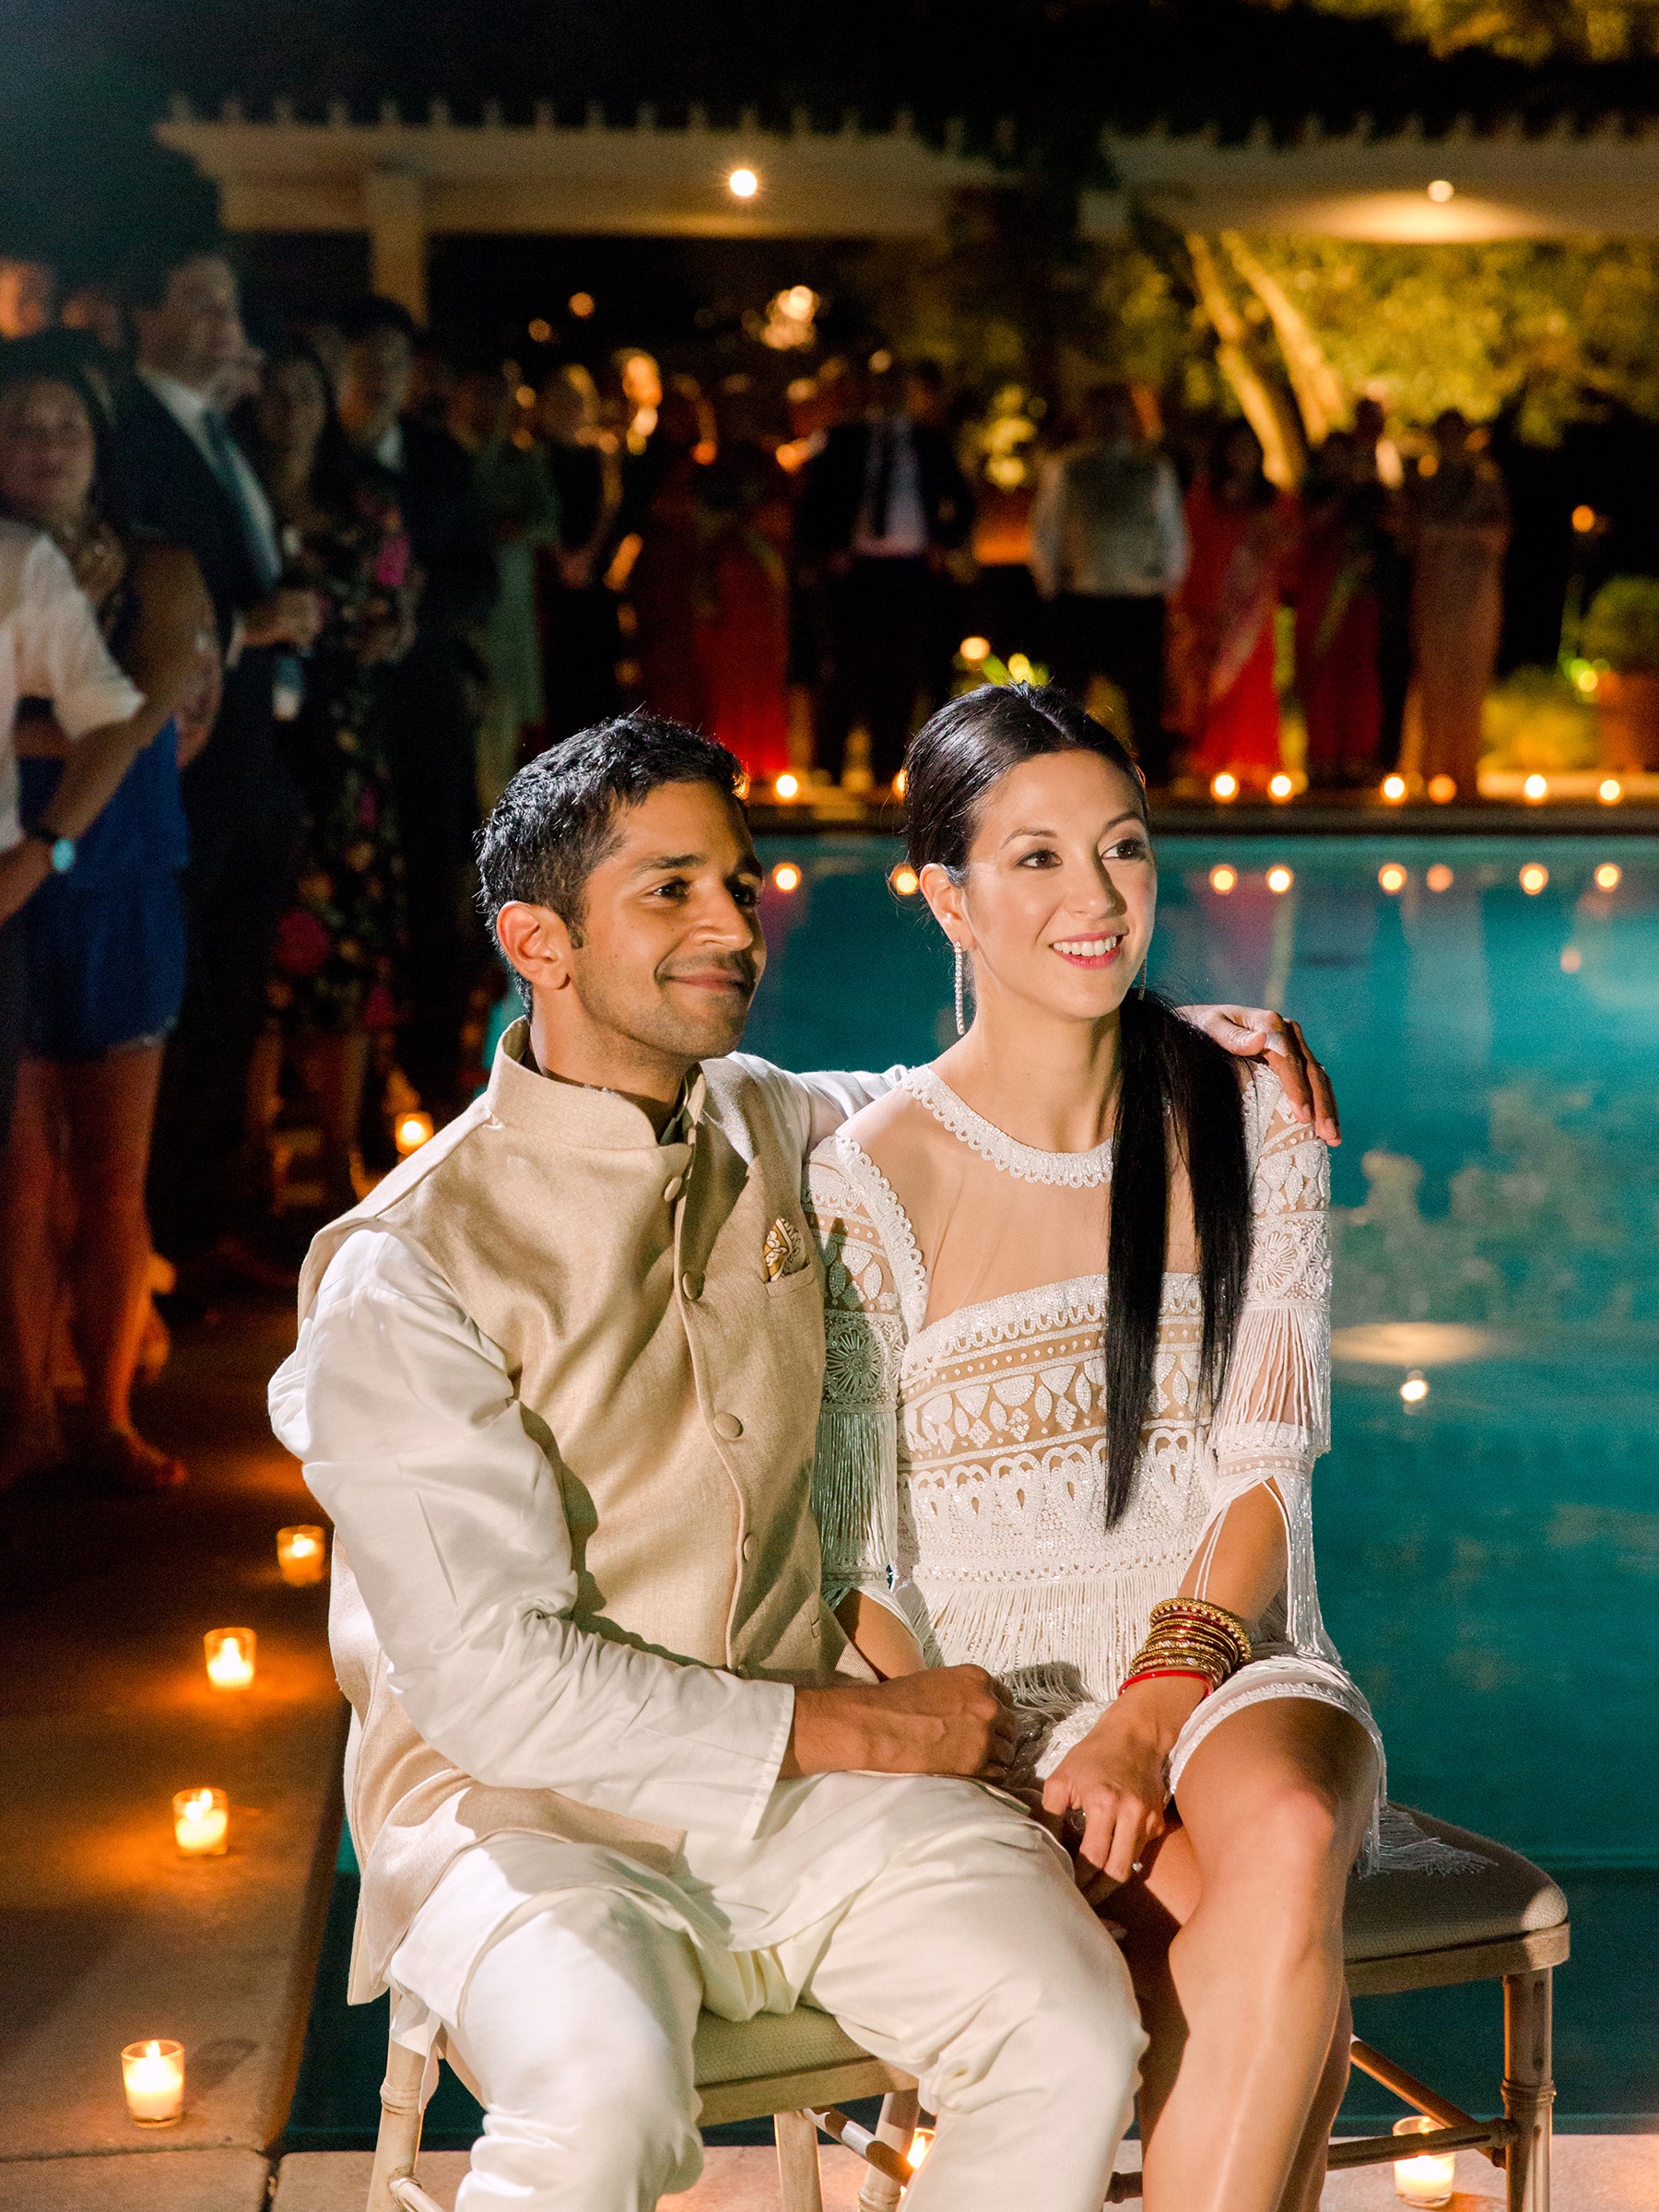 jenna alok wedding wine country california video same day edit